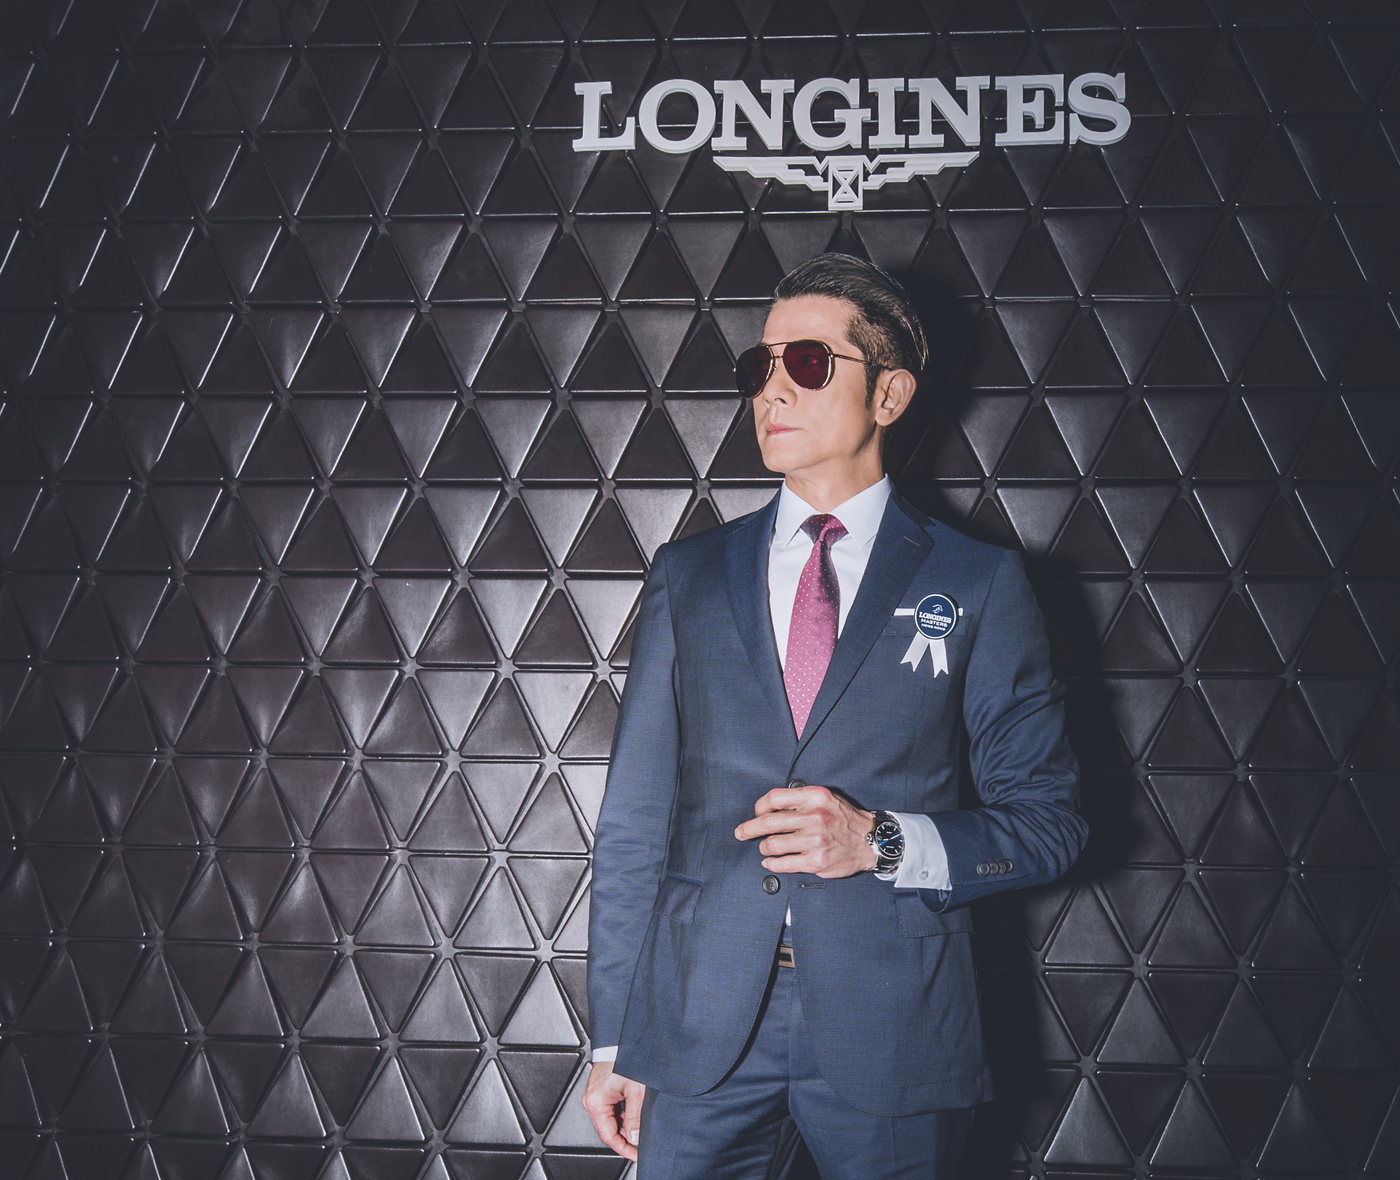 Longines Show Jumping Event: The 2019 Longines Masters of Hong Kong: a perfect mix of sports achievements and glamour  7